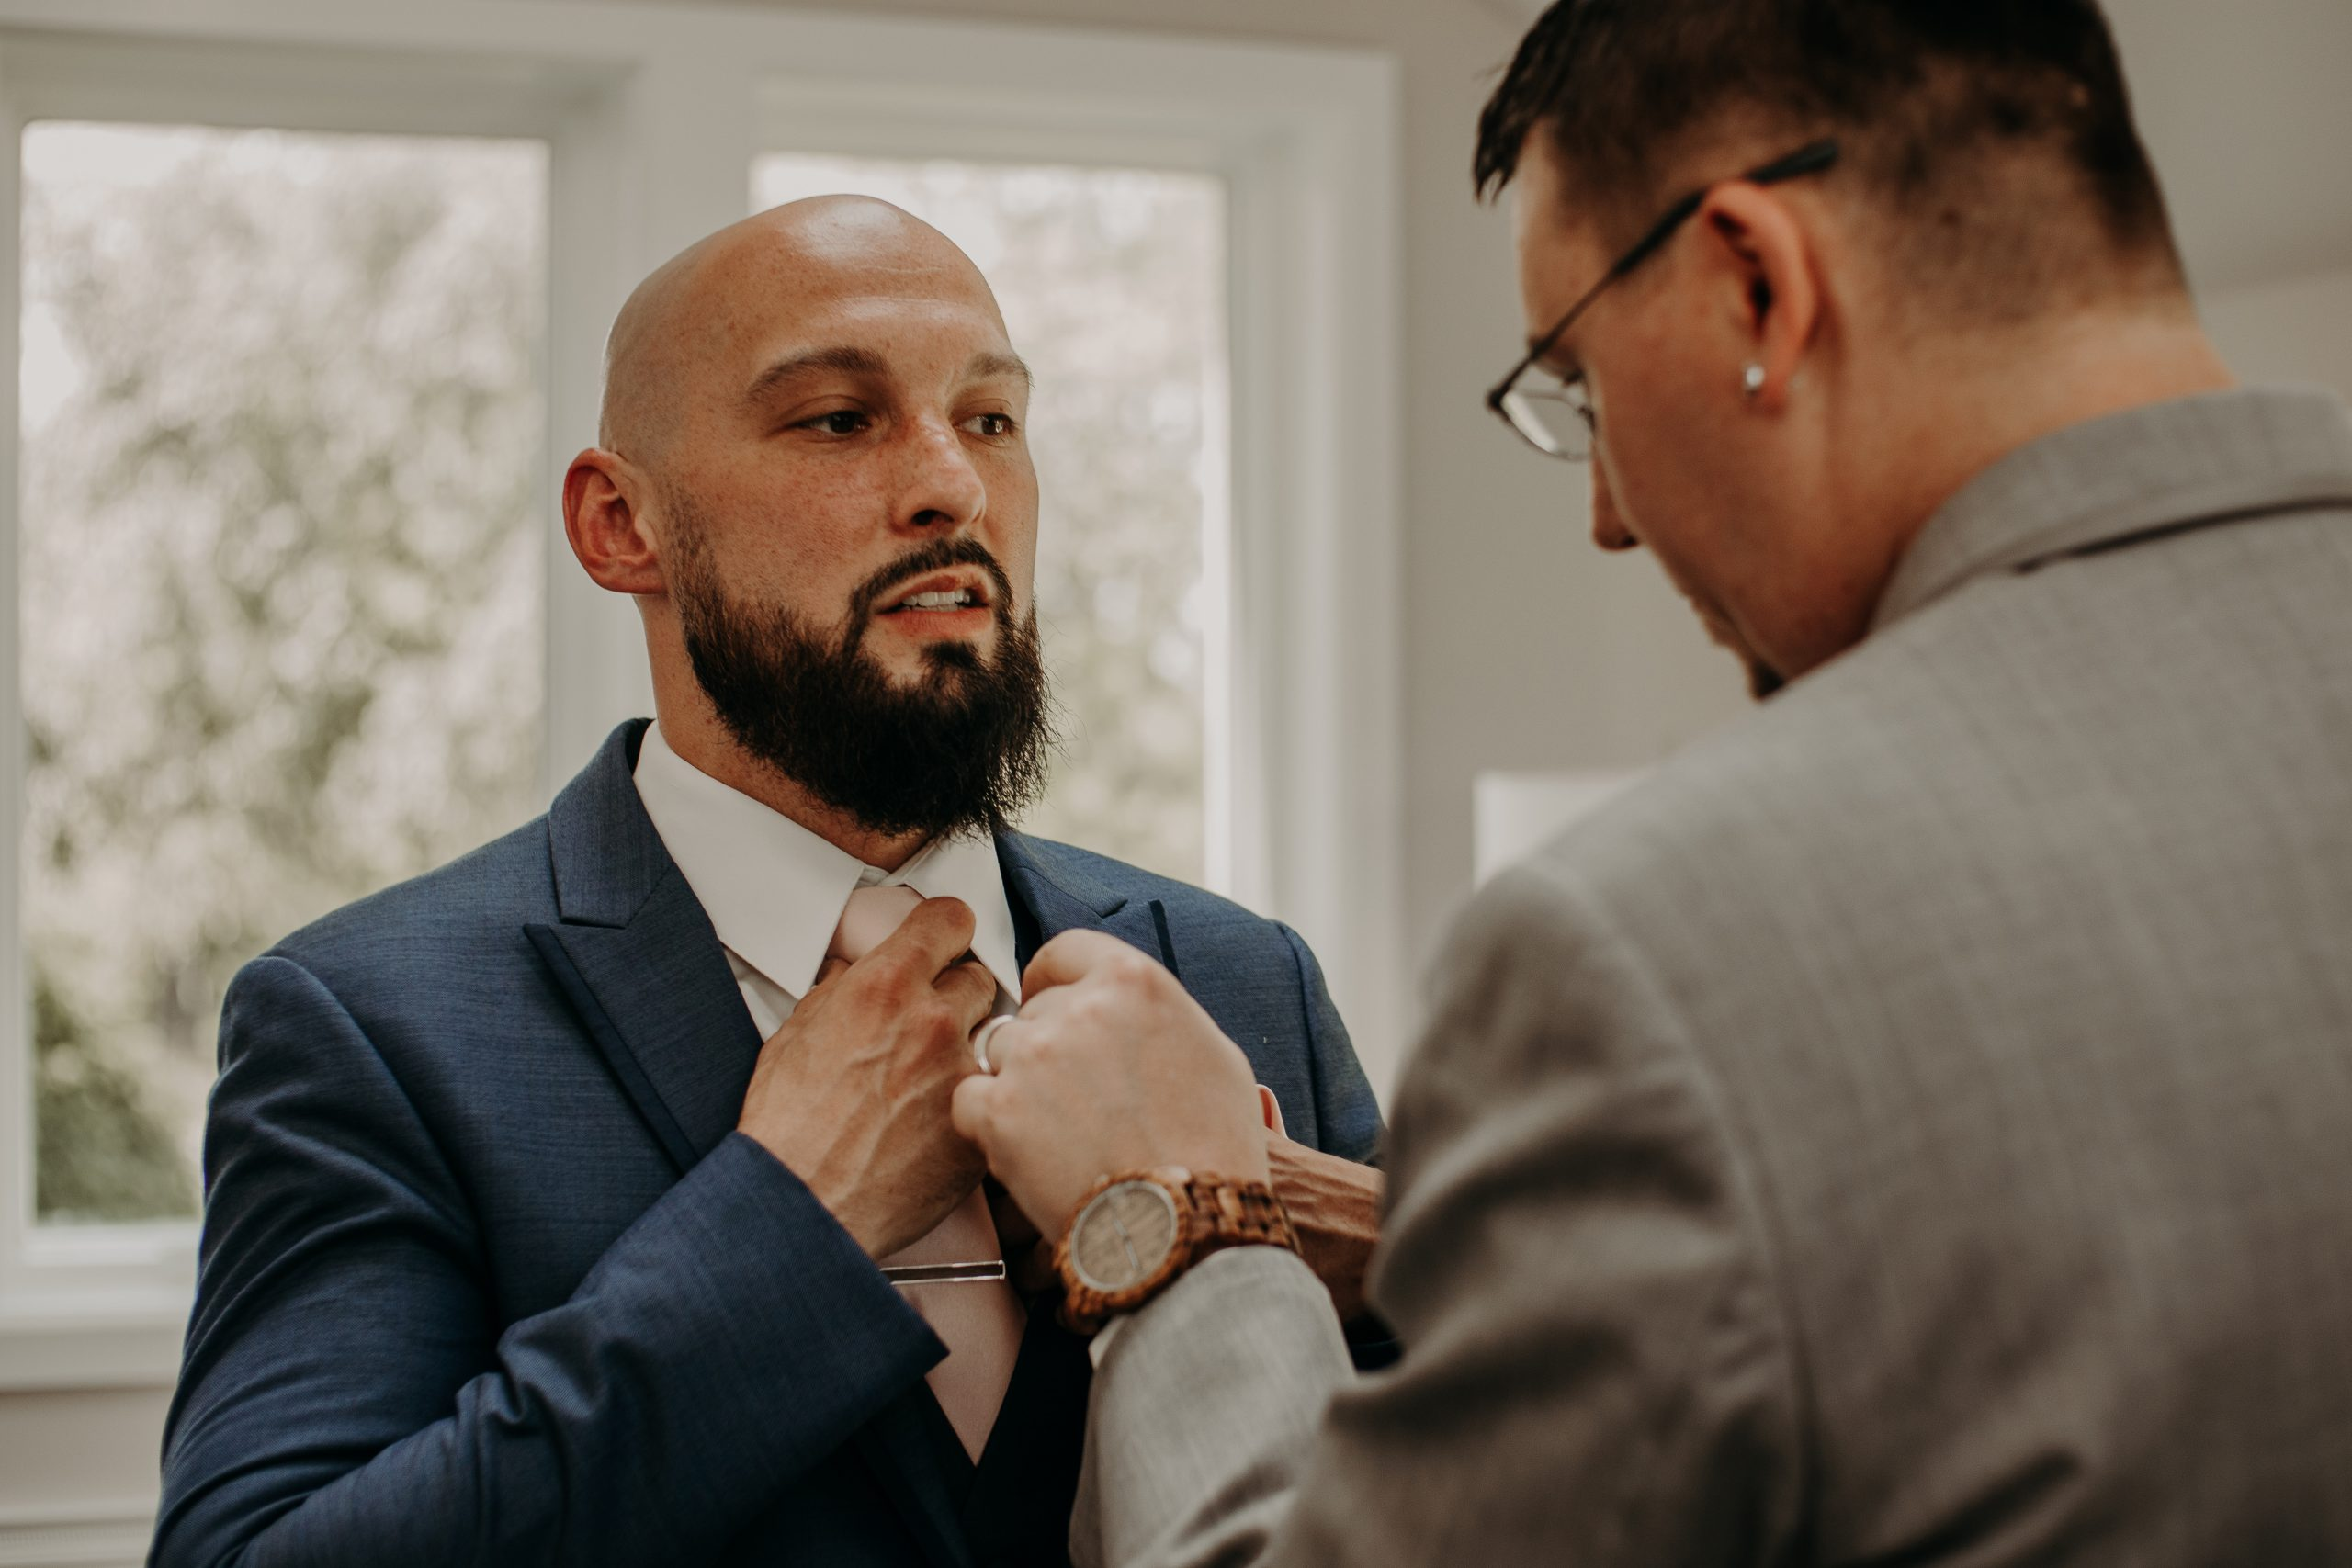 Getting some help from the groomsmen, the groom wraps up and finishing touches to his wardrobe that he will wear while walking down the isle. Christine and Richard wed on the Chestnut Hill Villa grounds on May of 2019. This organic ethereal styled wedding was captured by Garnet Dahlia Photography and featured on Dream Weddings.